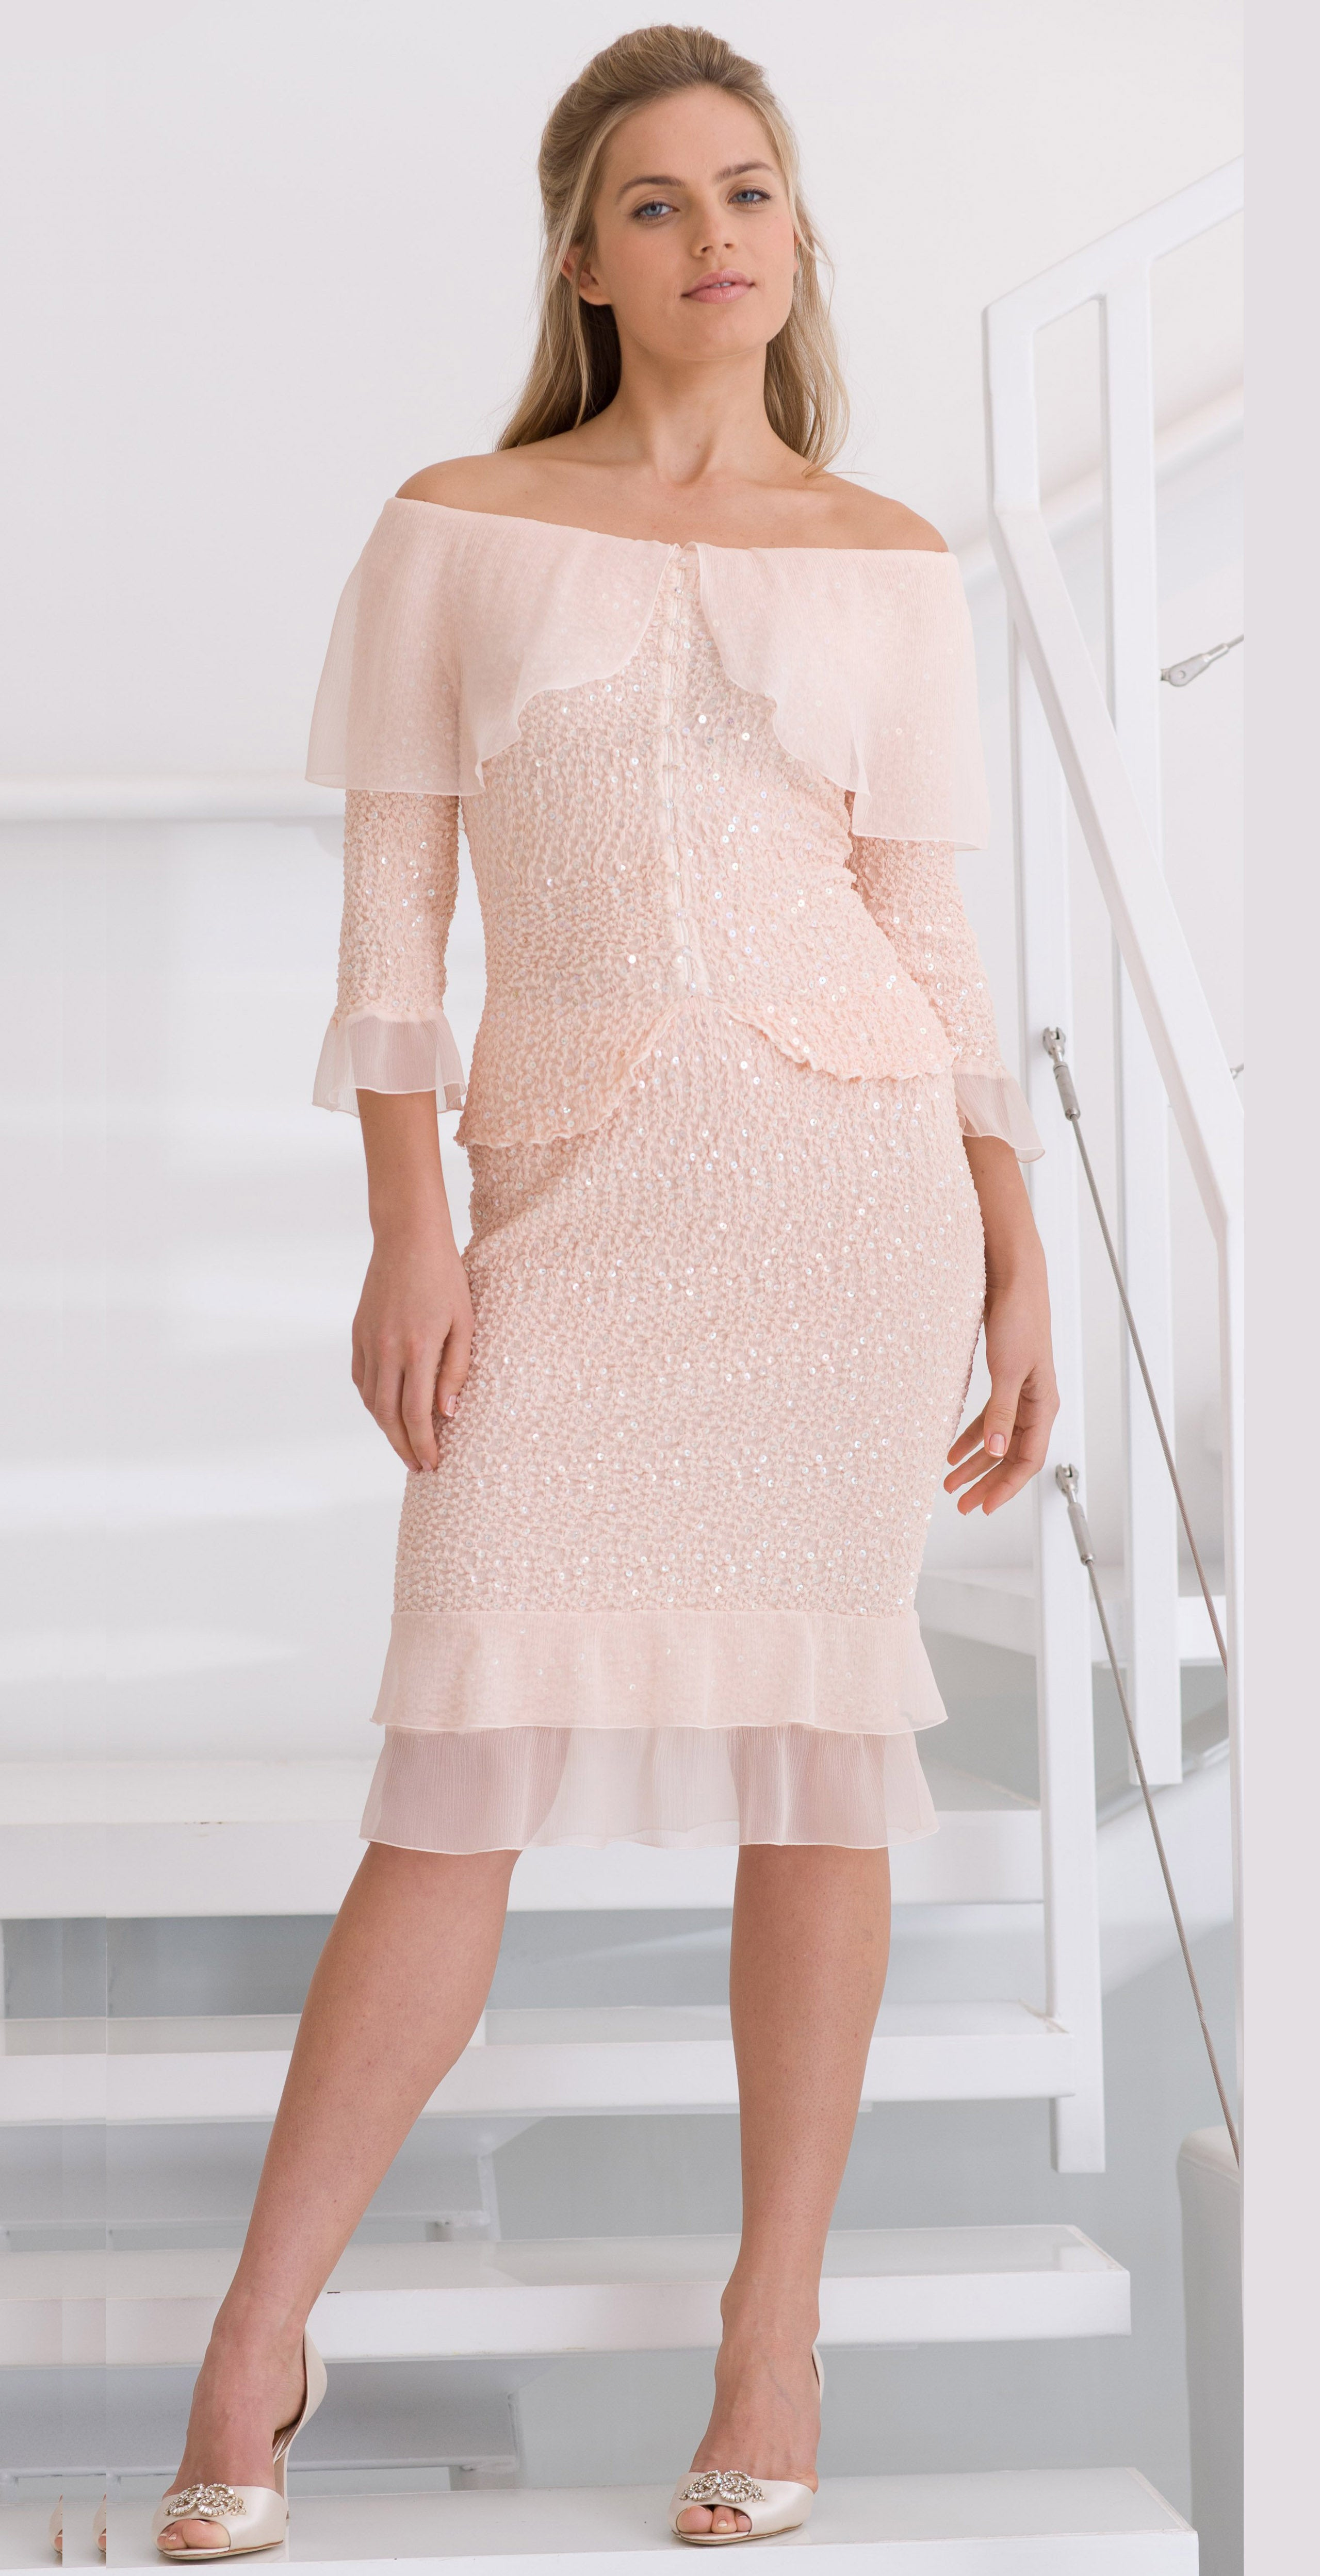 9f71e6317 [Evening Wear Bridal Dresses Mother of the Bride Dresses Outlet], [Bridal  Dresses